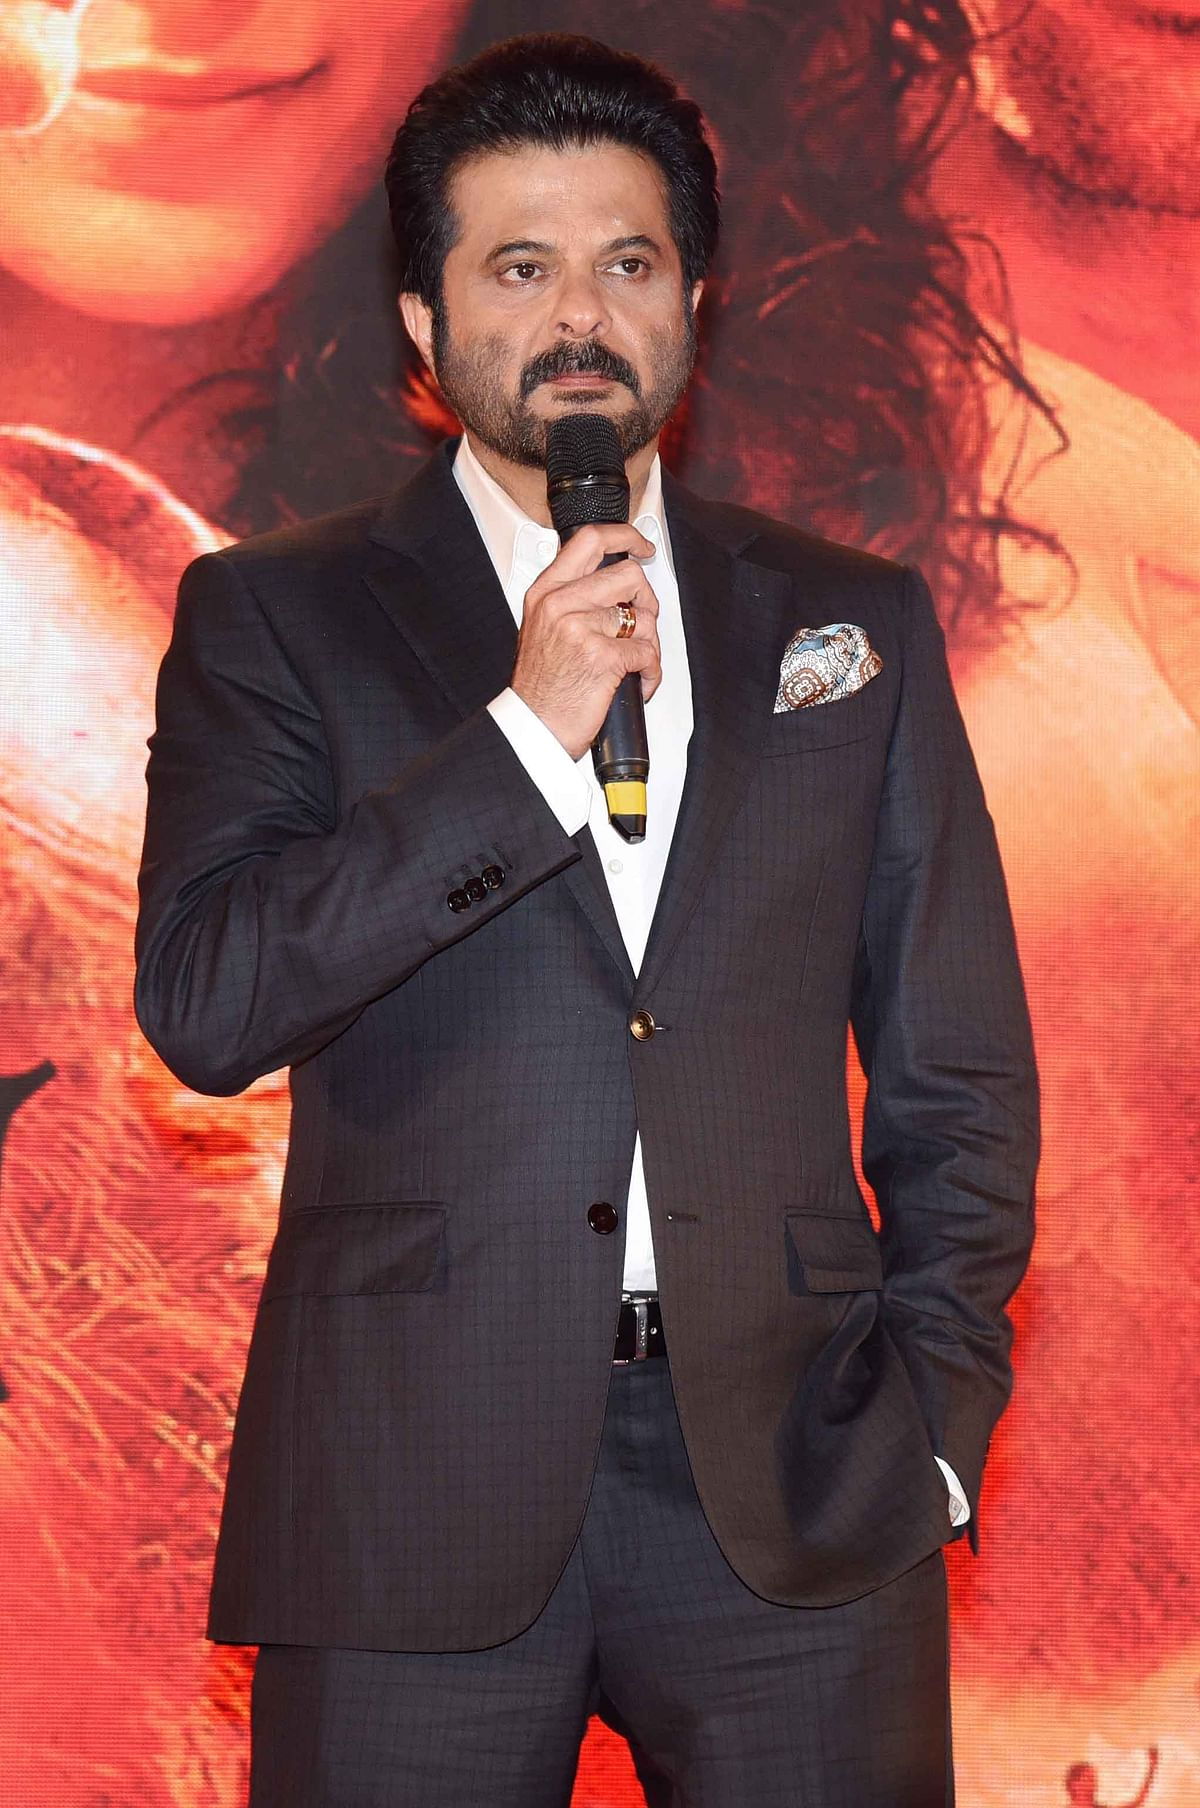 Anil Kapoor gets  emotional while introducing his son. (Photo: Yogen Shah)